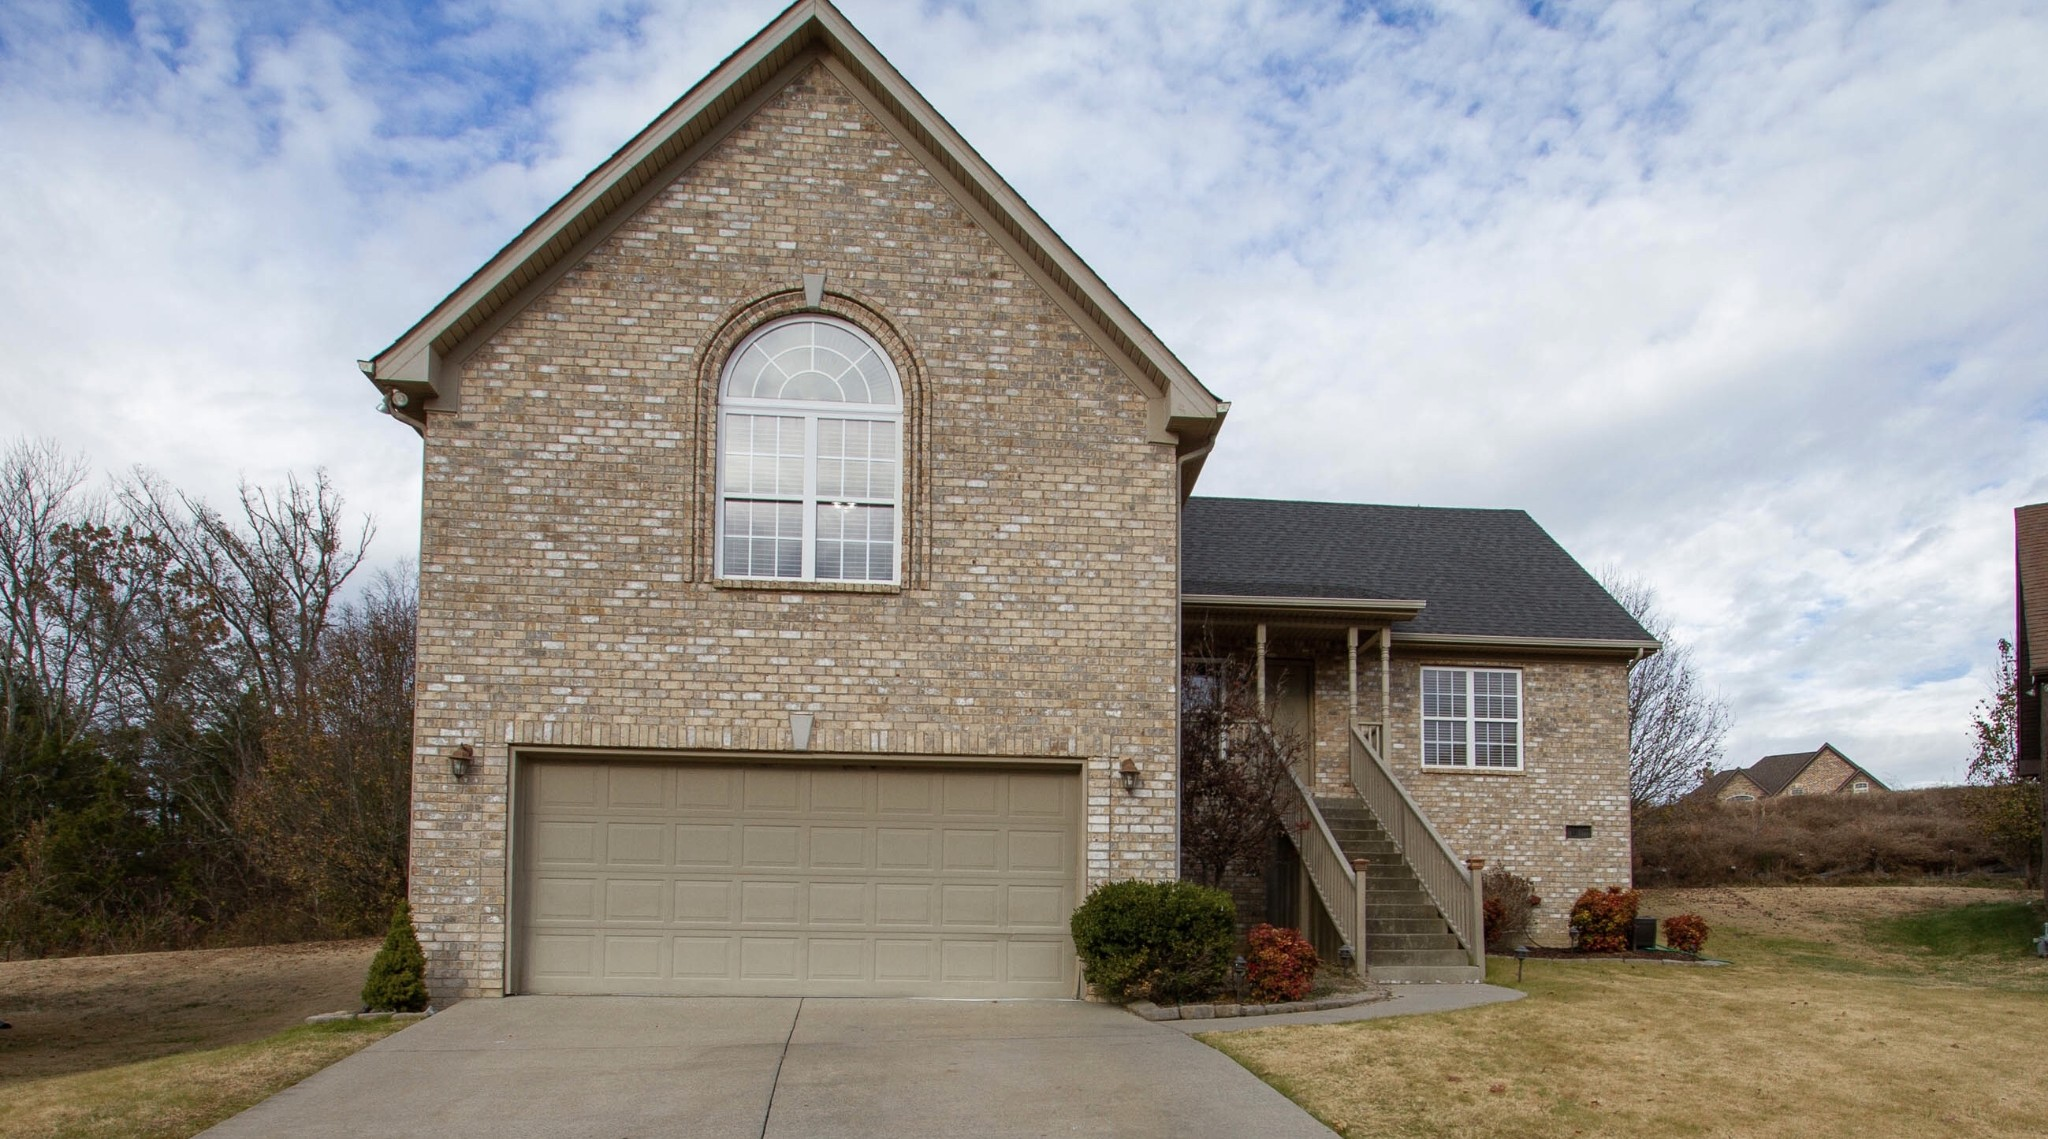 5121 Citation Ct, Mount Juliet, TN 37122 - Mount Juliet, TN real estate listing